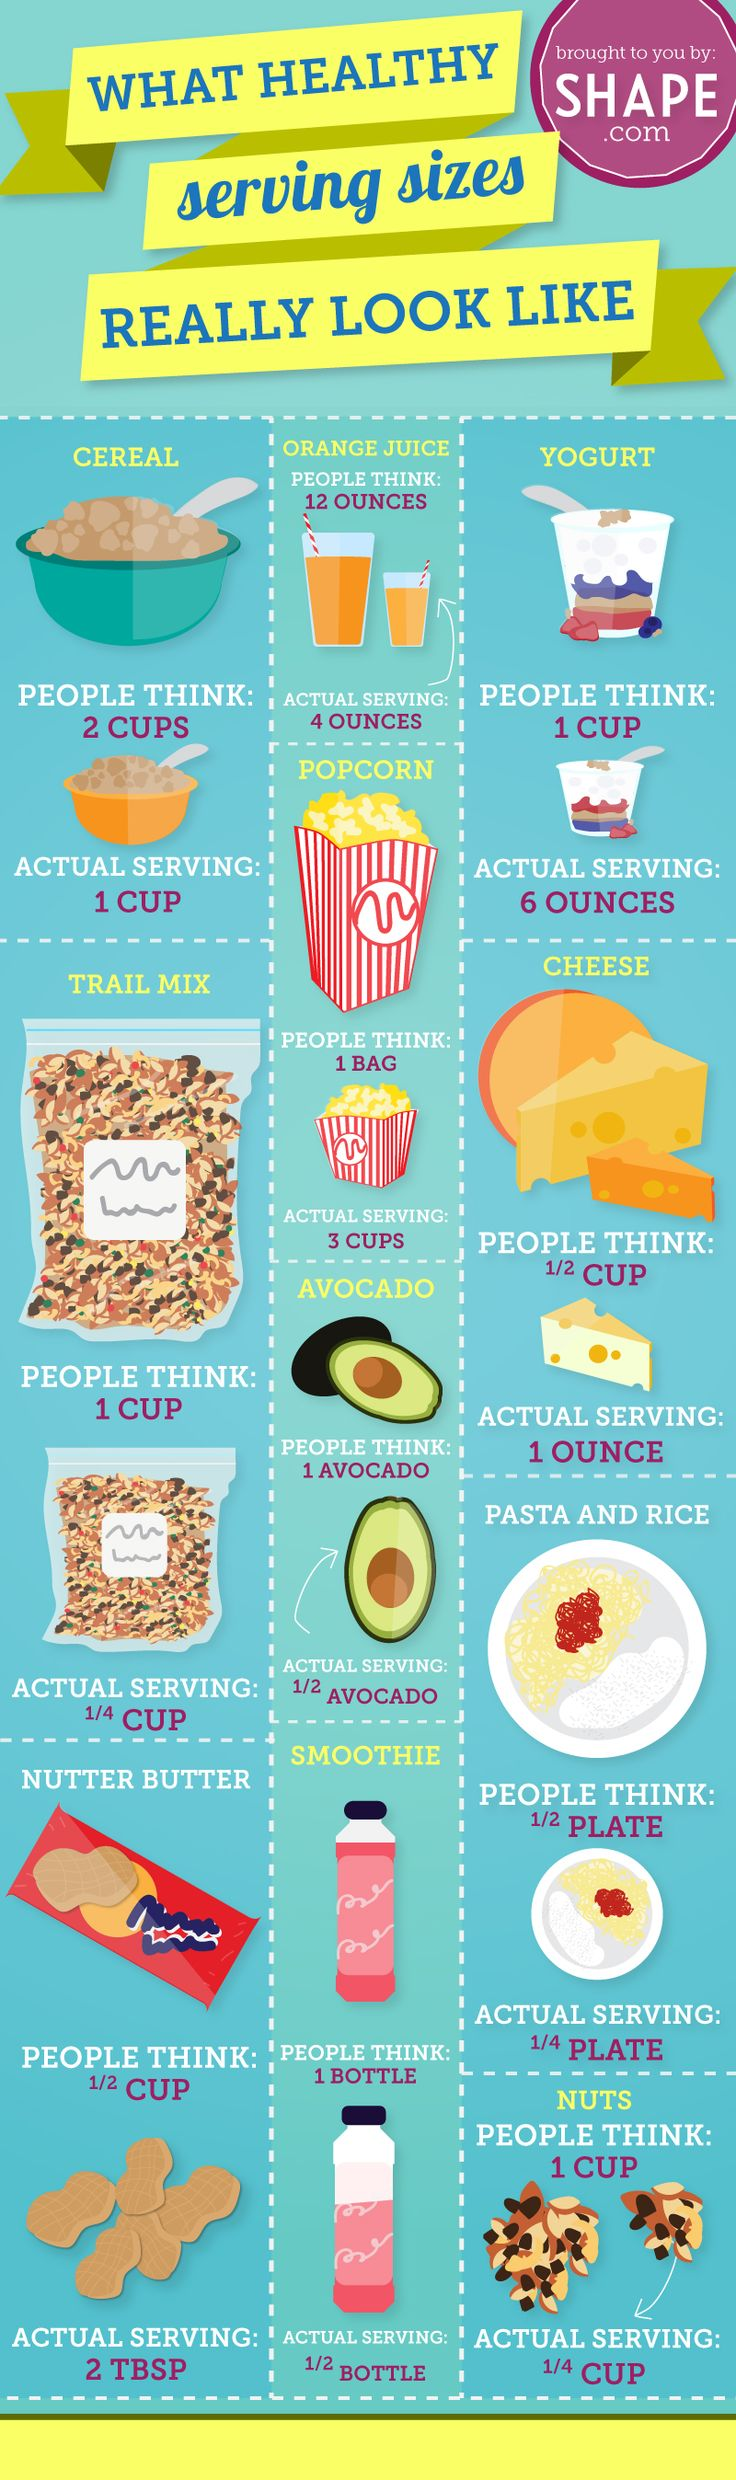 Handy Infographic to Measure Serving Sizes of Healthy Snacks | Shape Magazine